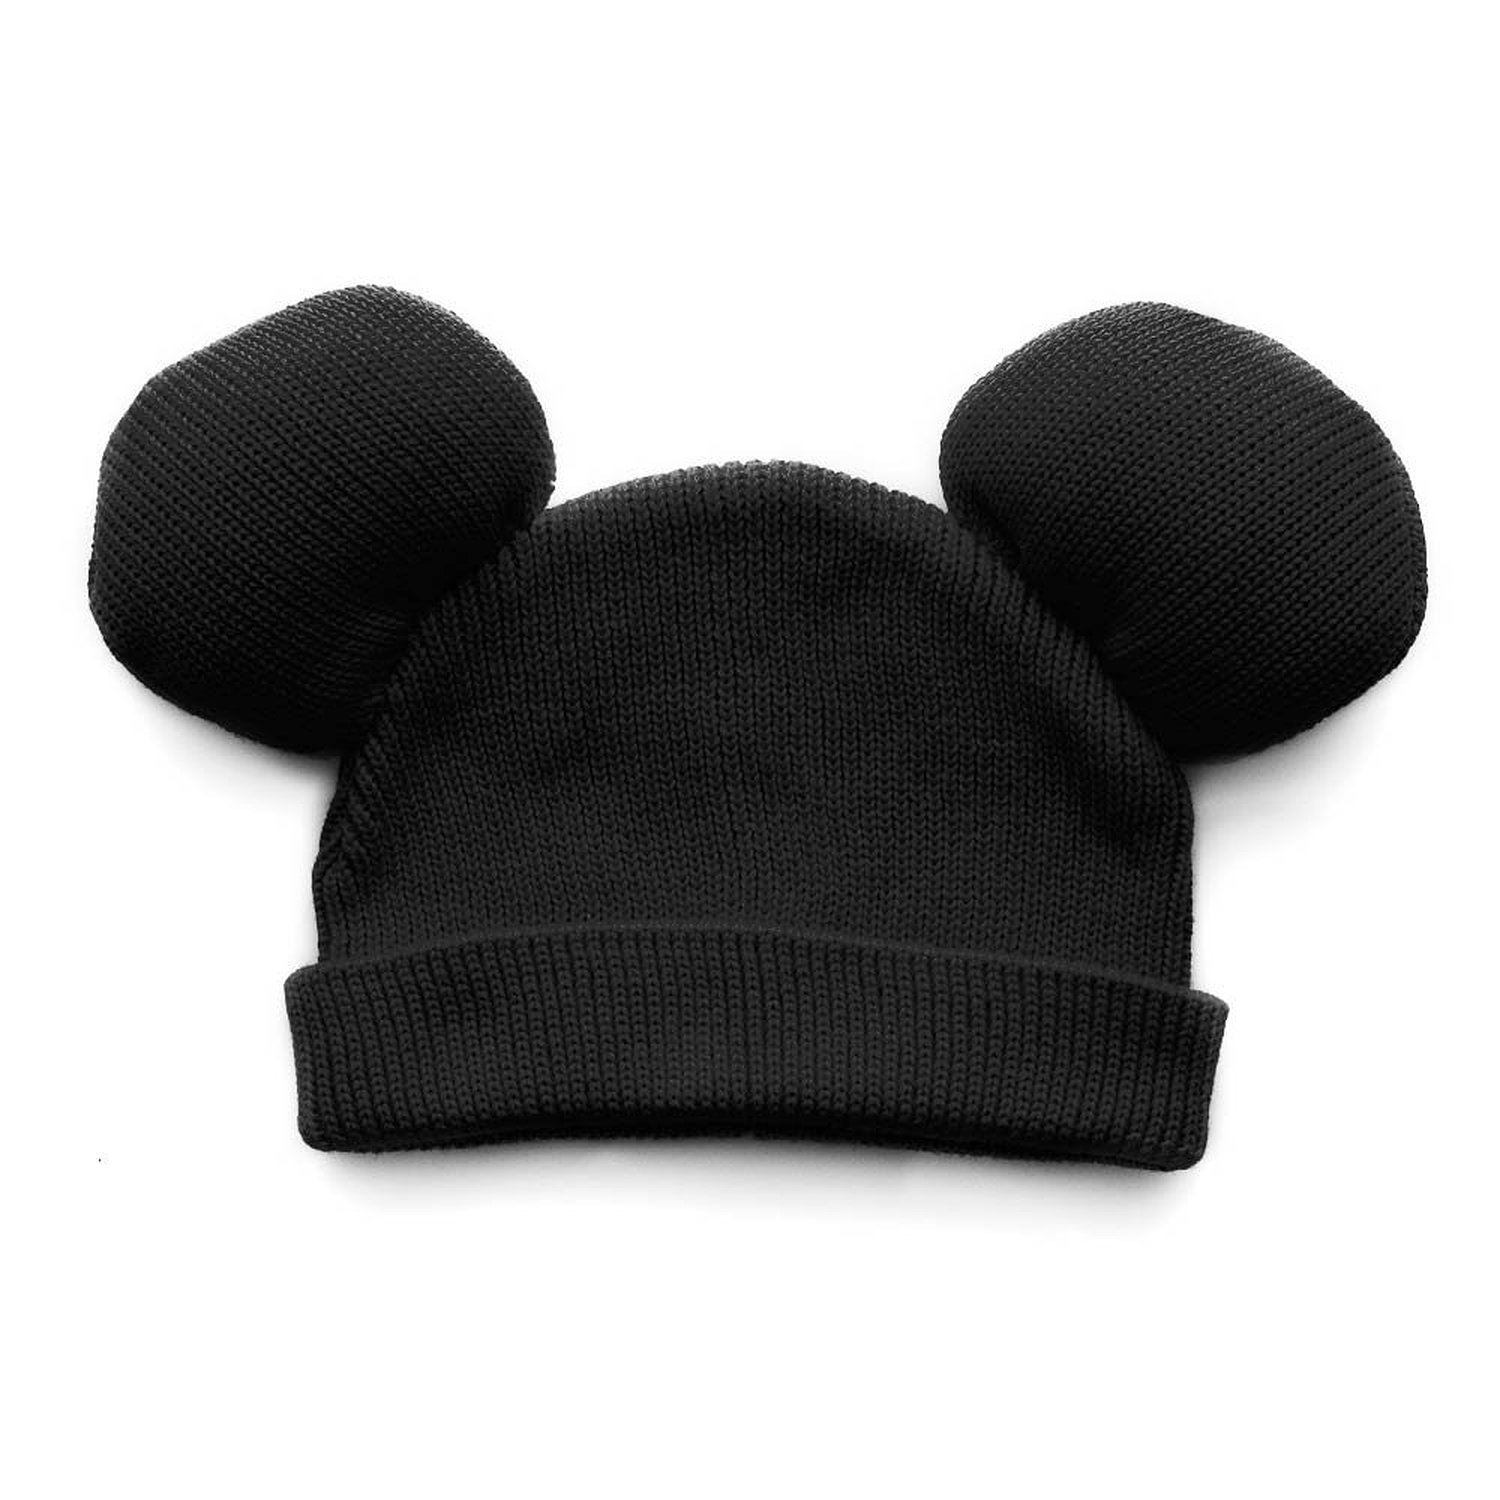 Trumpette Mickey Hat - Black at Amazon Men's Clothing store: